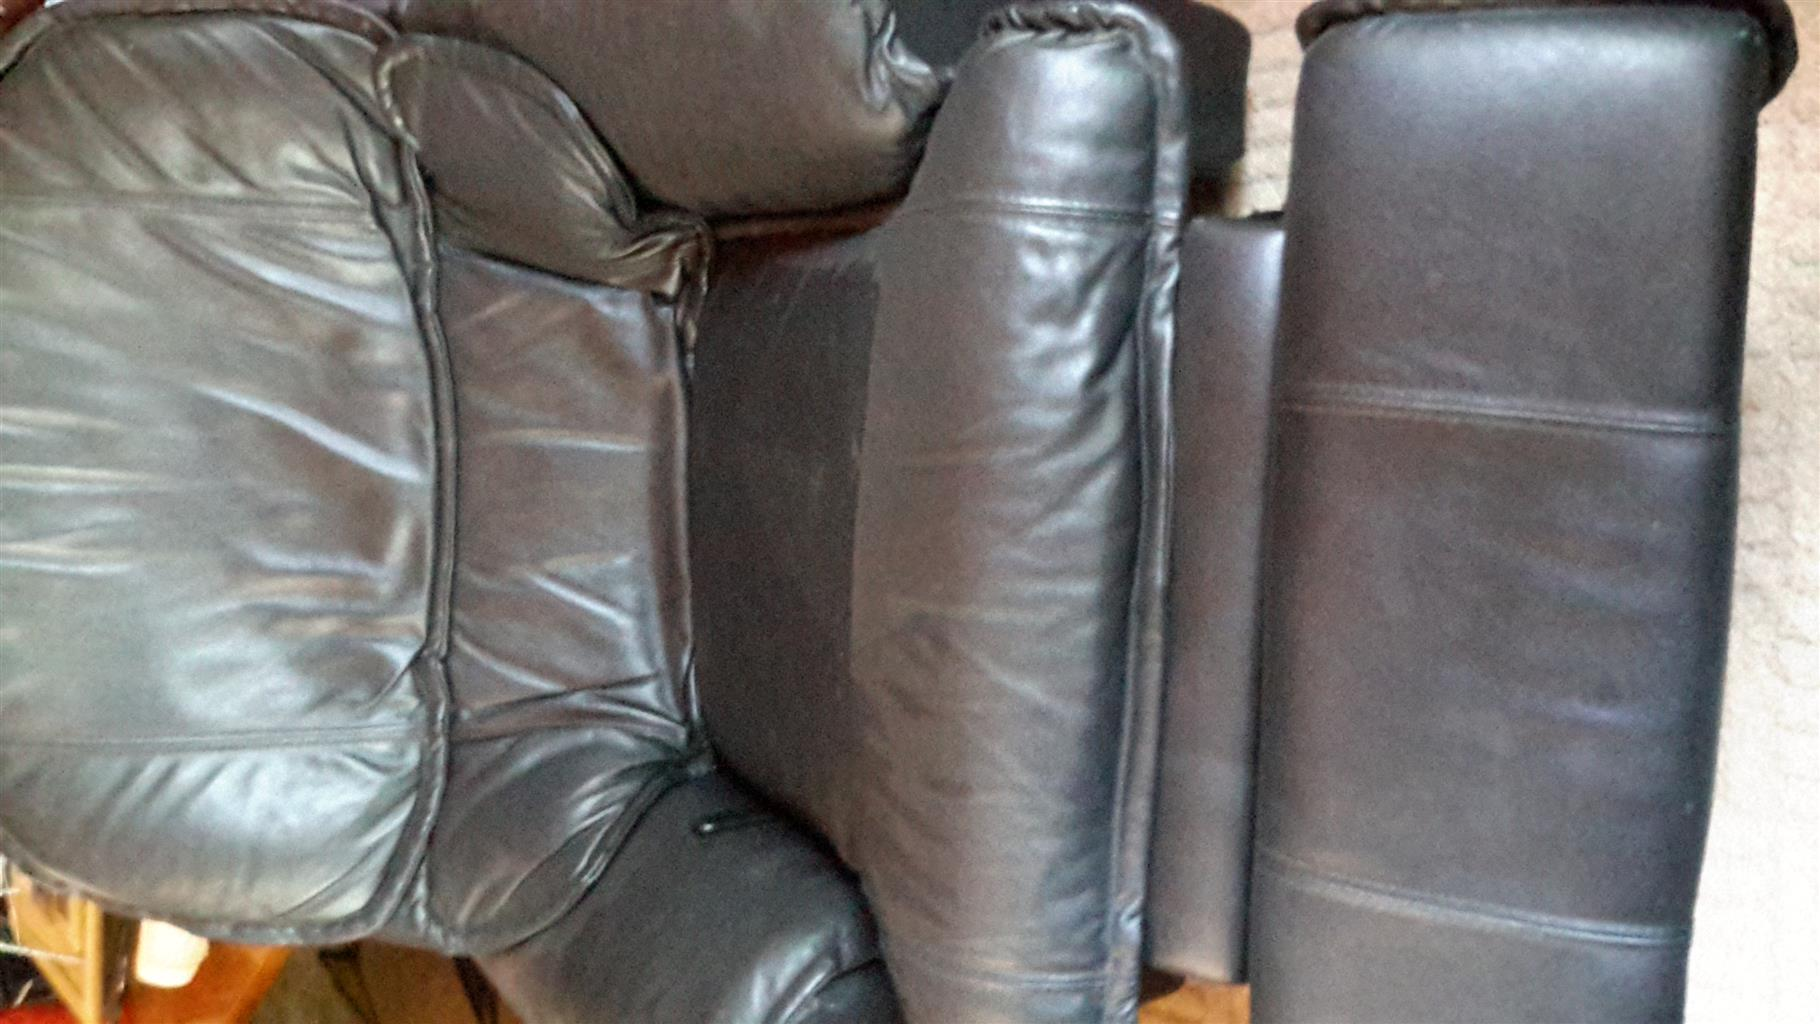 Full Leather Recliners - x3 Two Black and 1 Tan